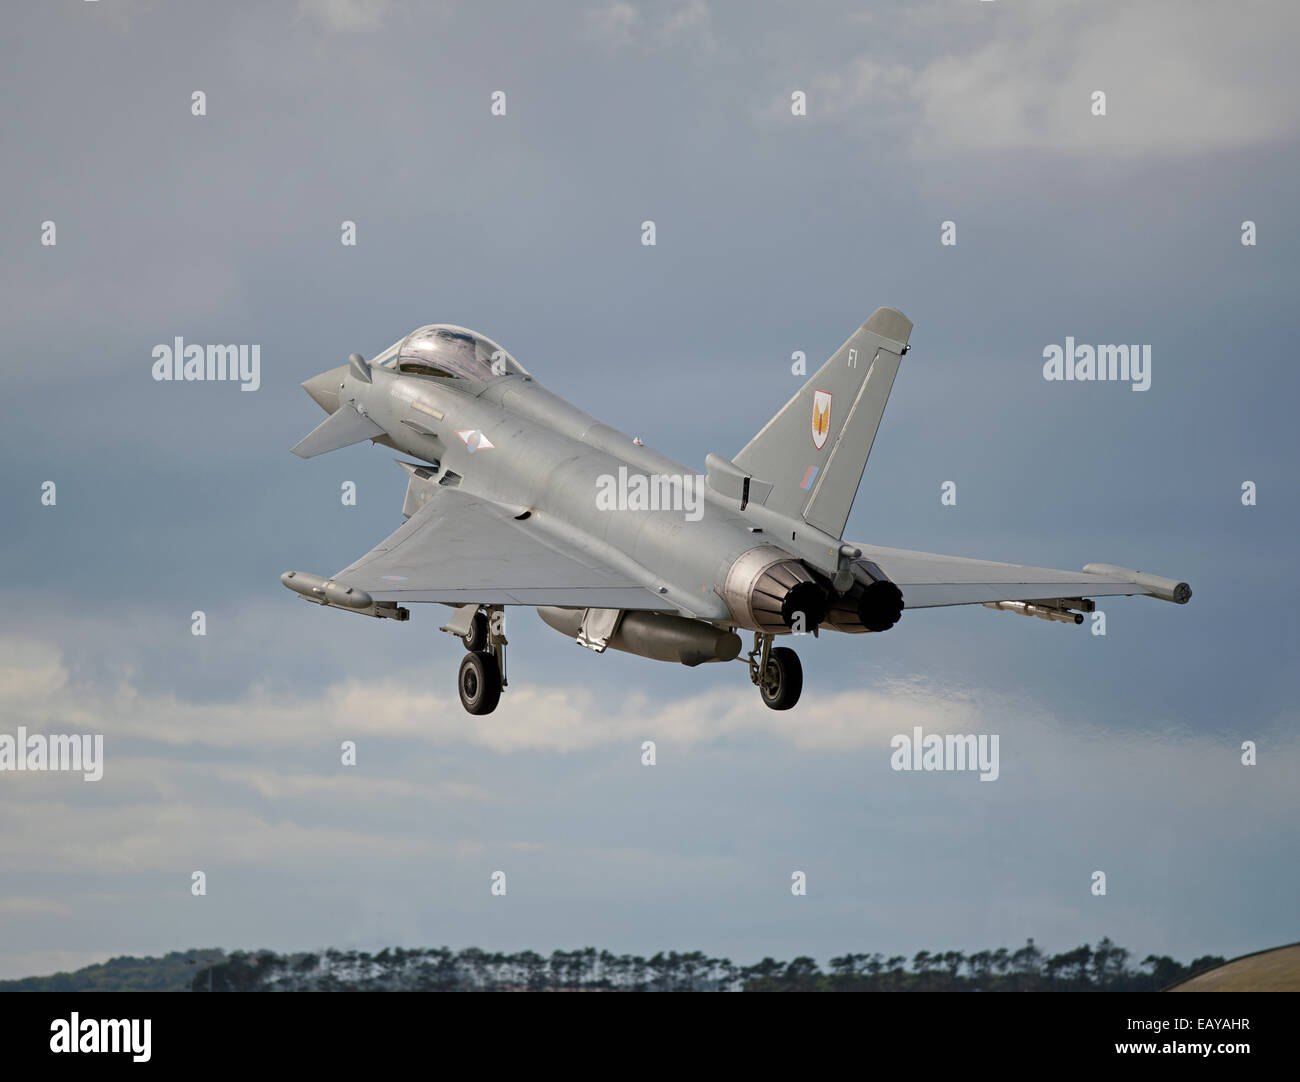 Eurofighter Typhoon FRG4 Military Fast Jet Fighter.  SCO 9178. - Stock Image